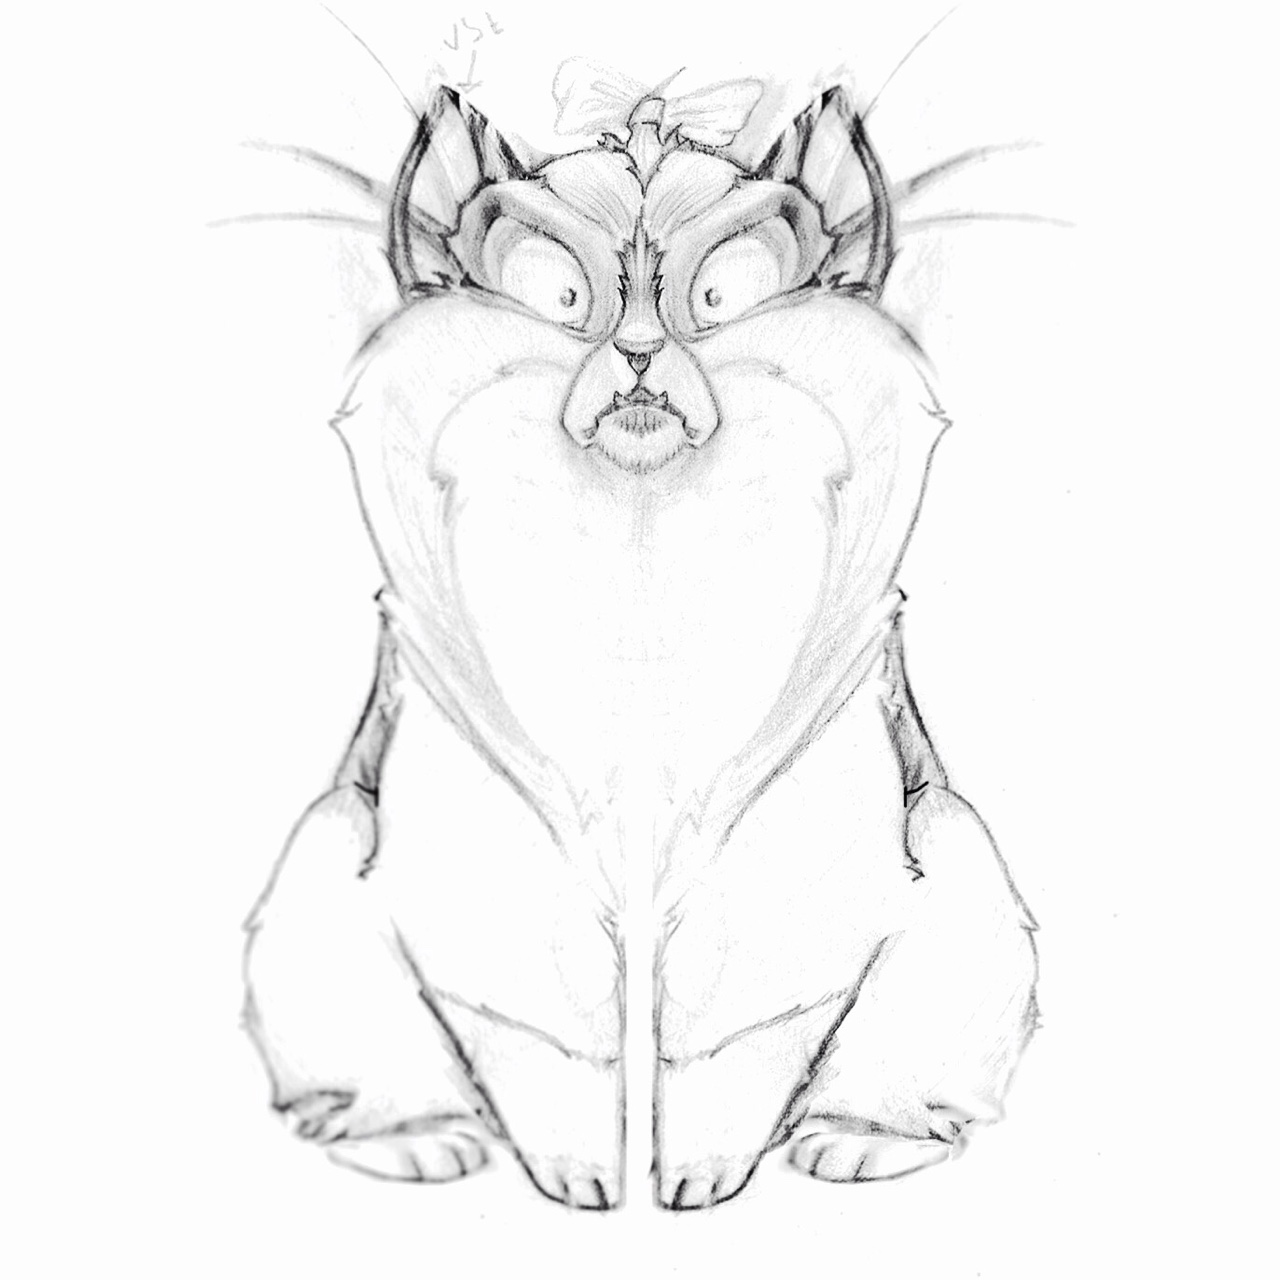 Oh yeah and I drew this. Character design for a children's book (named after and based on my gorgeous diva cat, Madame George). #childrensbooks #characterdesign #sketch4life #conceptart #pencil #illustration #animalcharacterdesign #artanddesign #art #sketchoftheday #cartoon